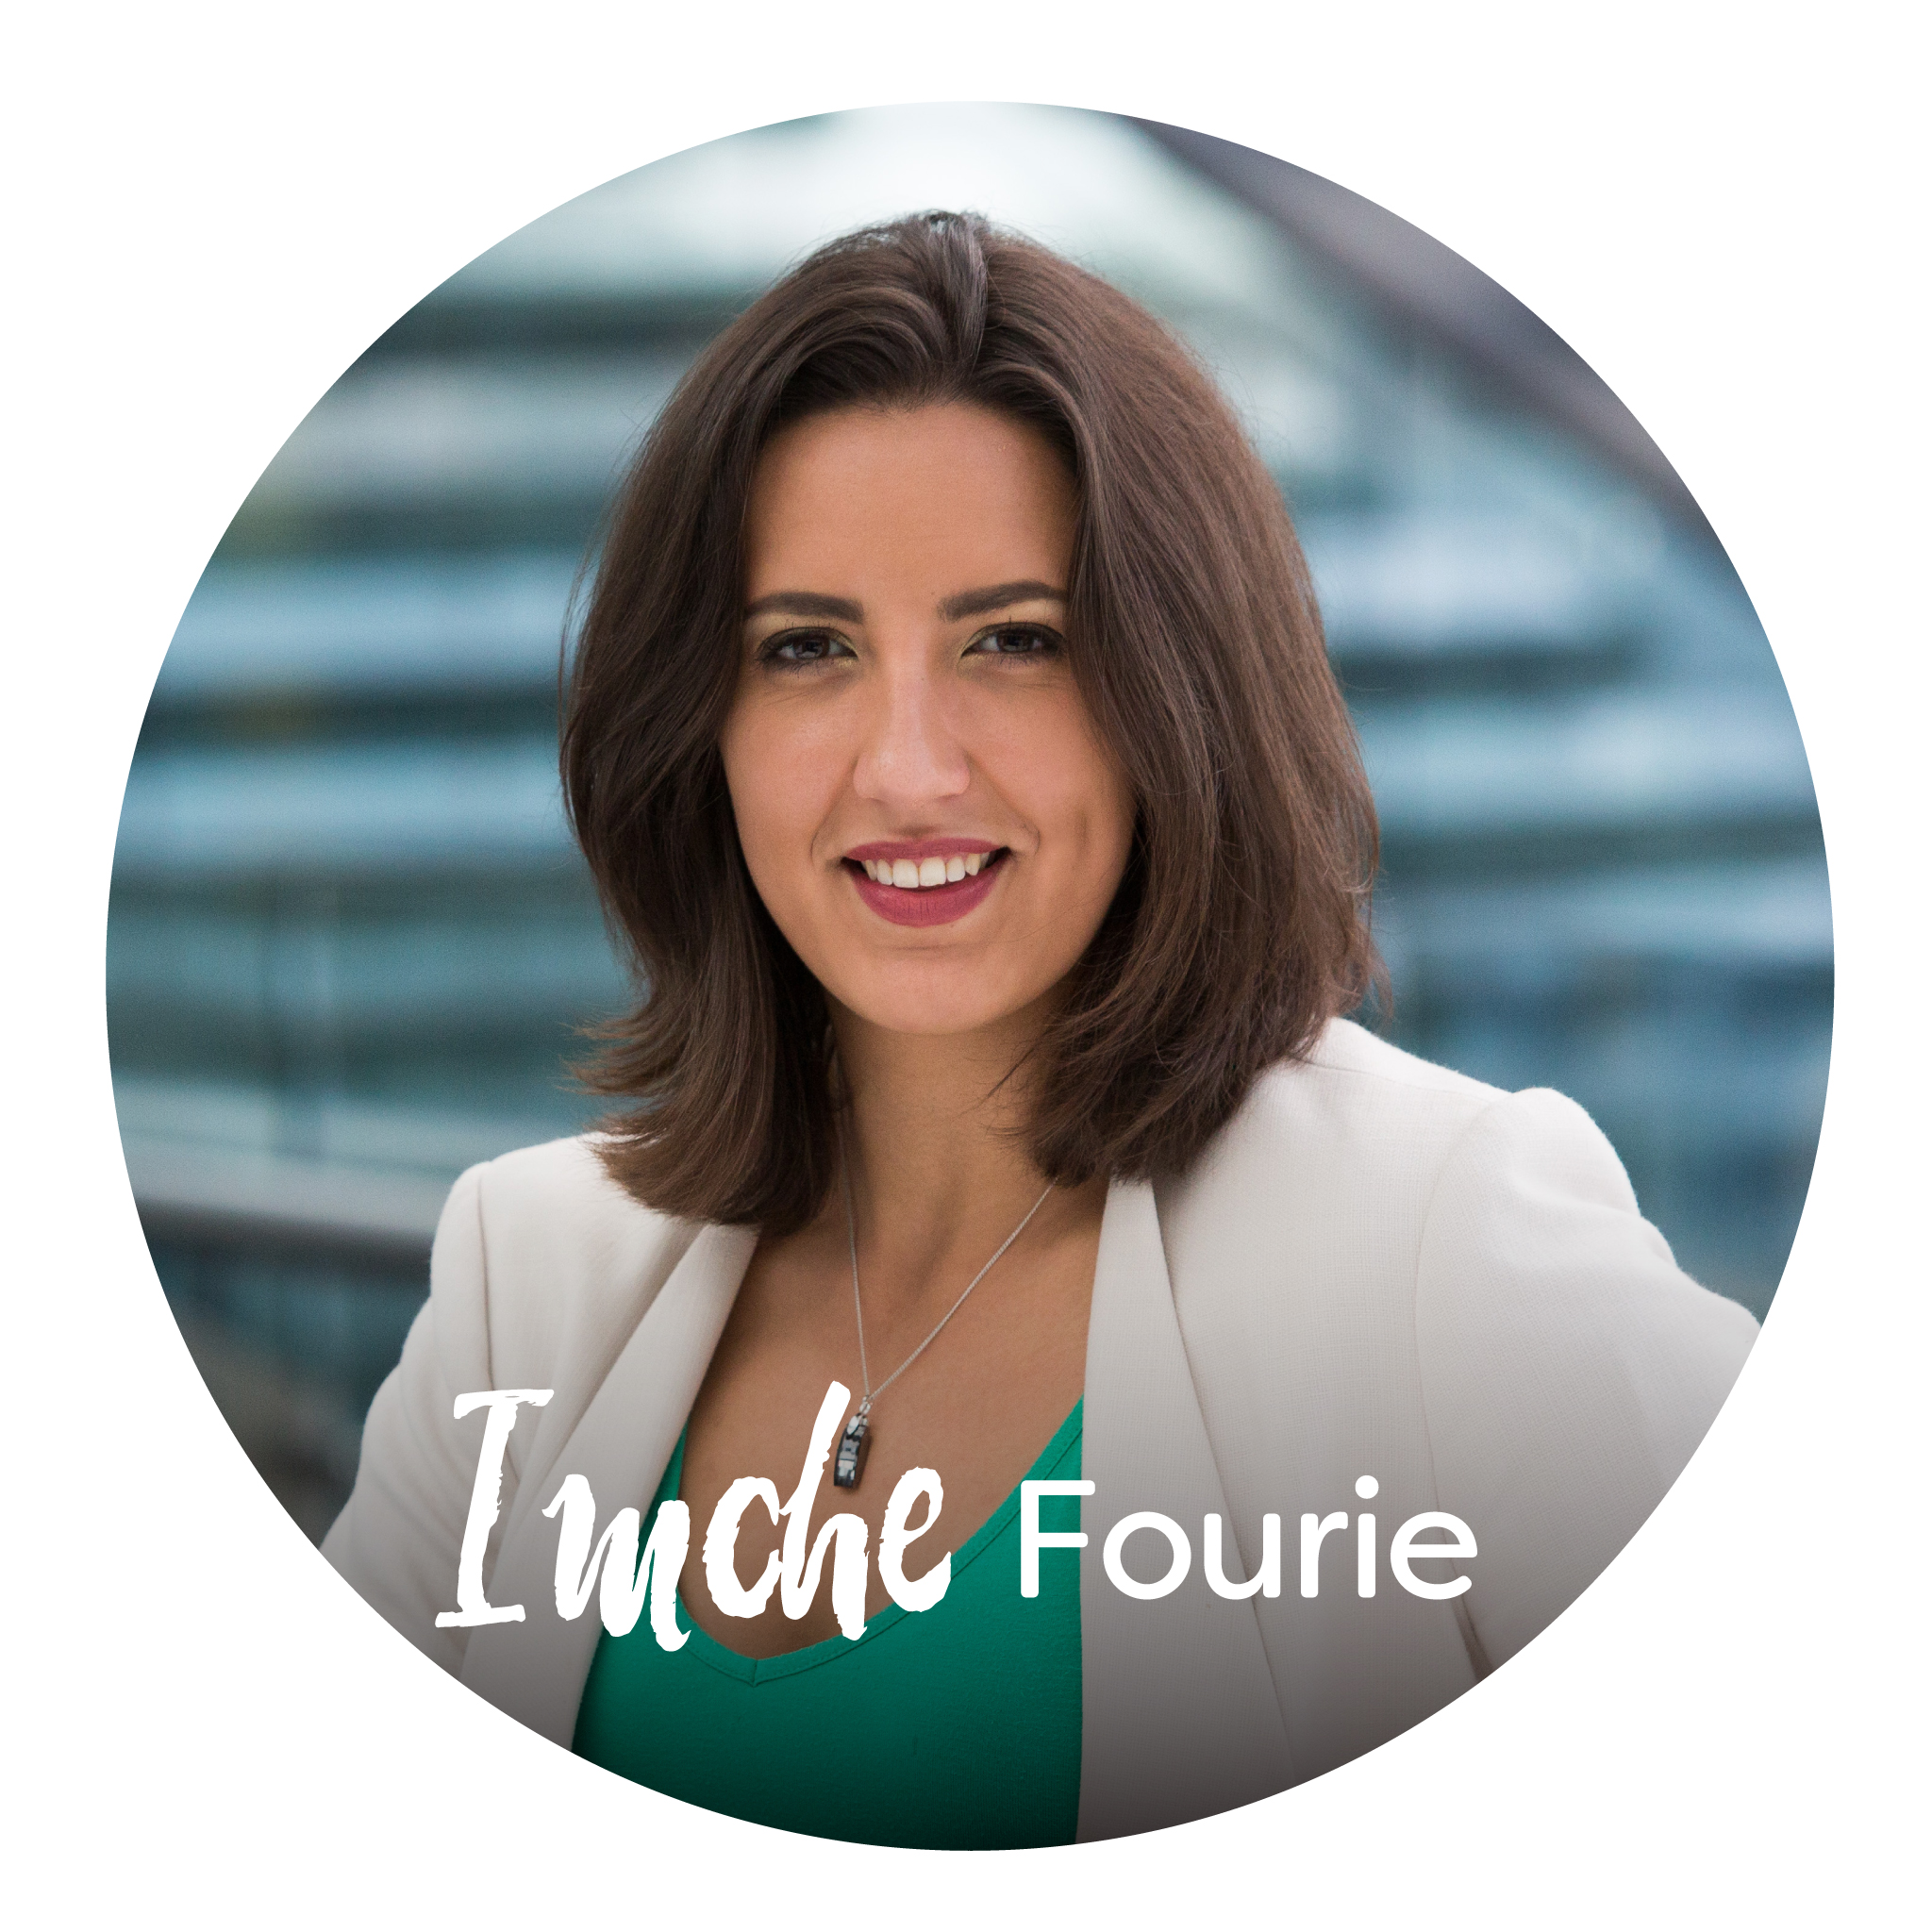 A picture of Imche Fourie